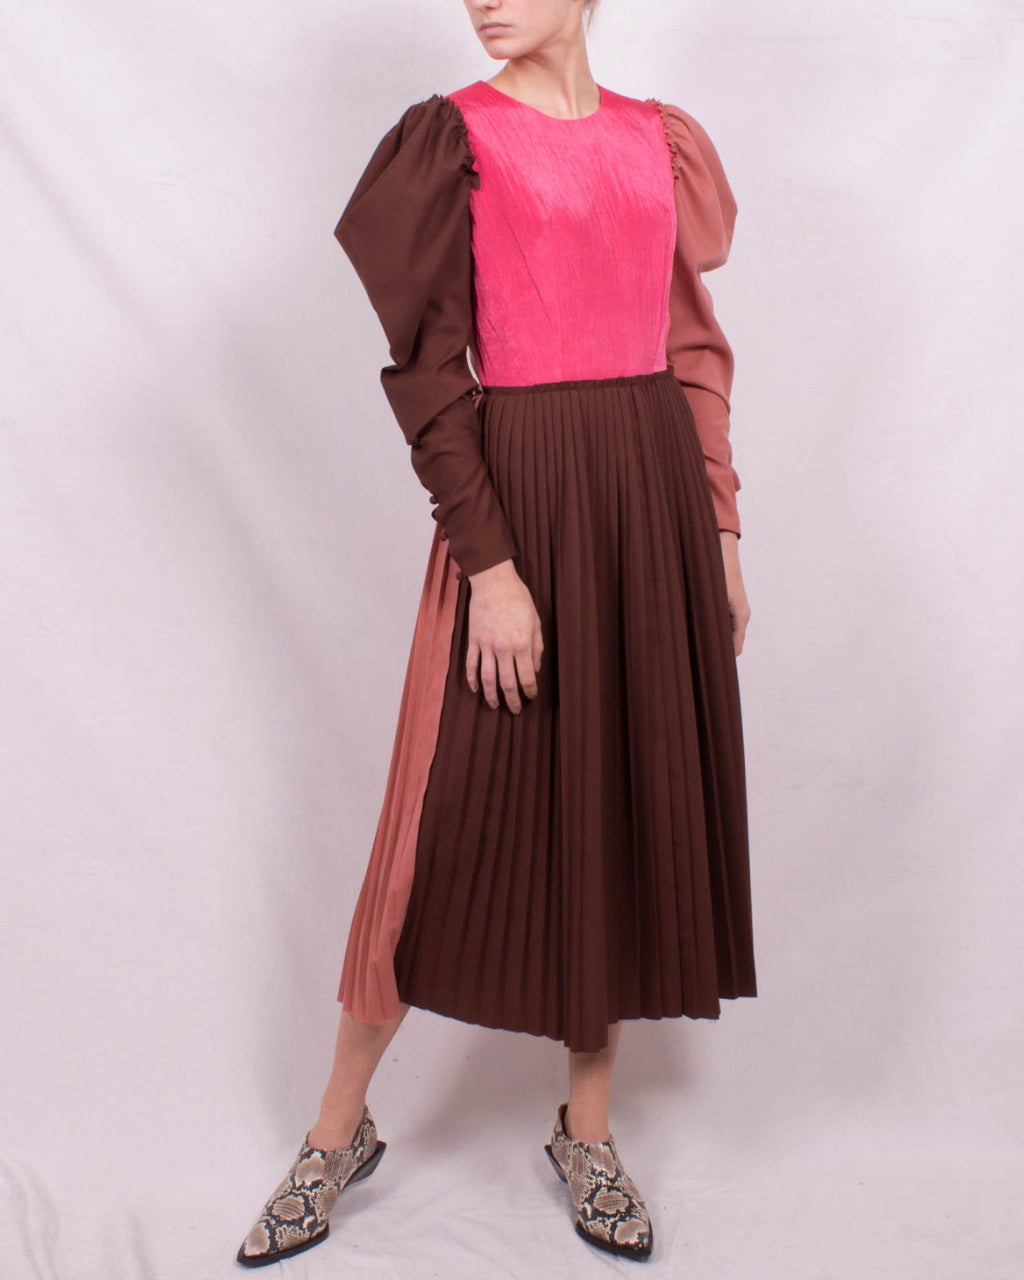 Ivy Dress Japanese Wool Rust Tonal Mix and Satin Crinkle Coral Pink - SPECIAL PRICE